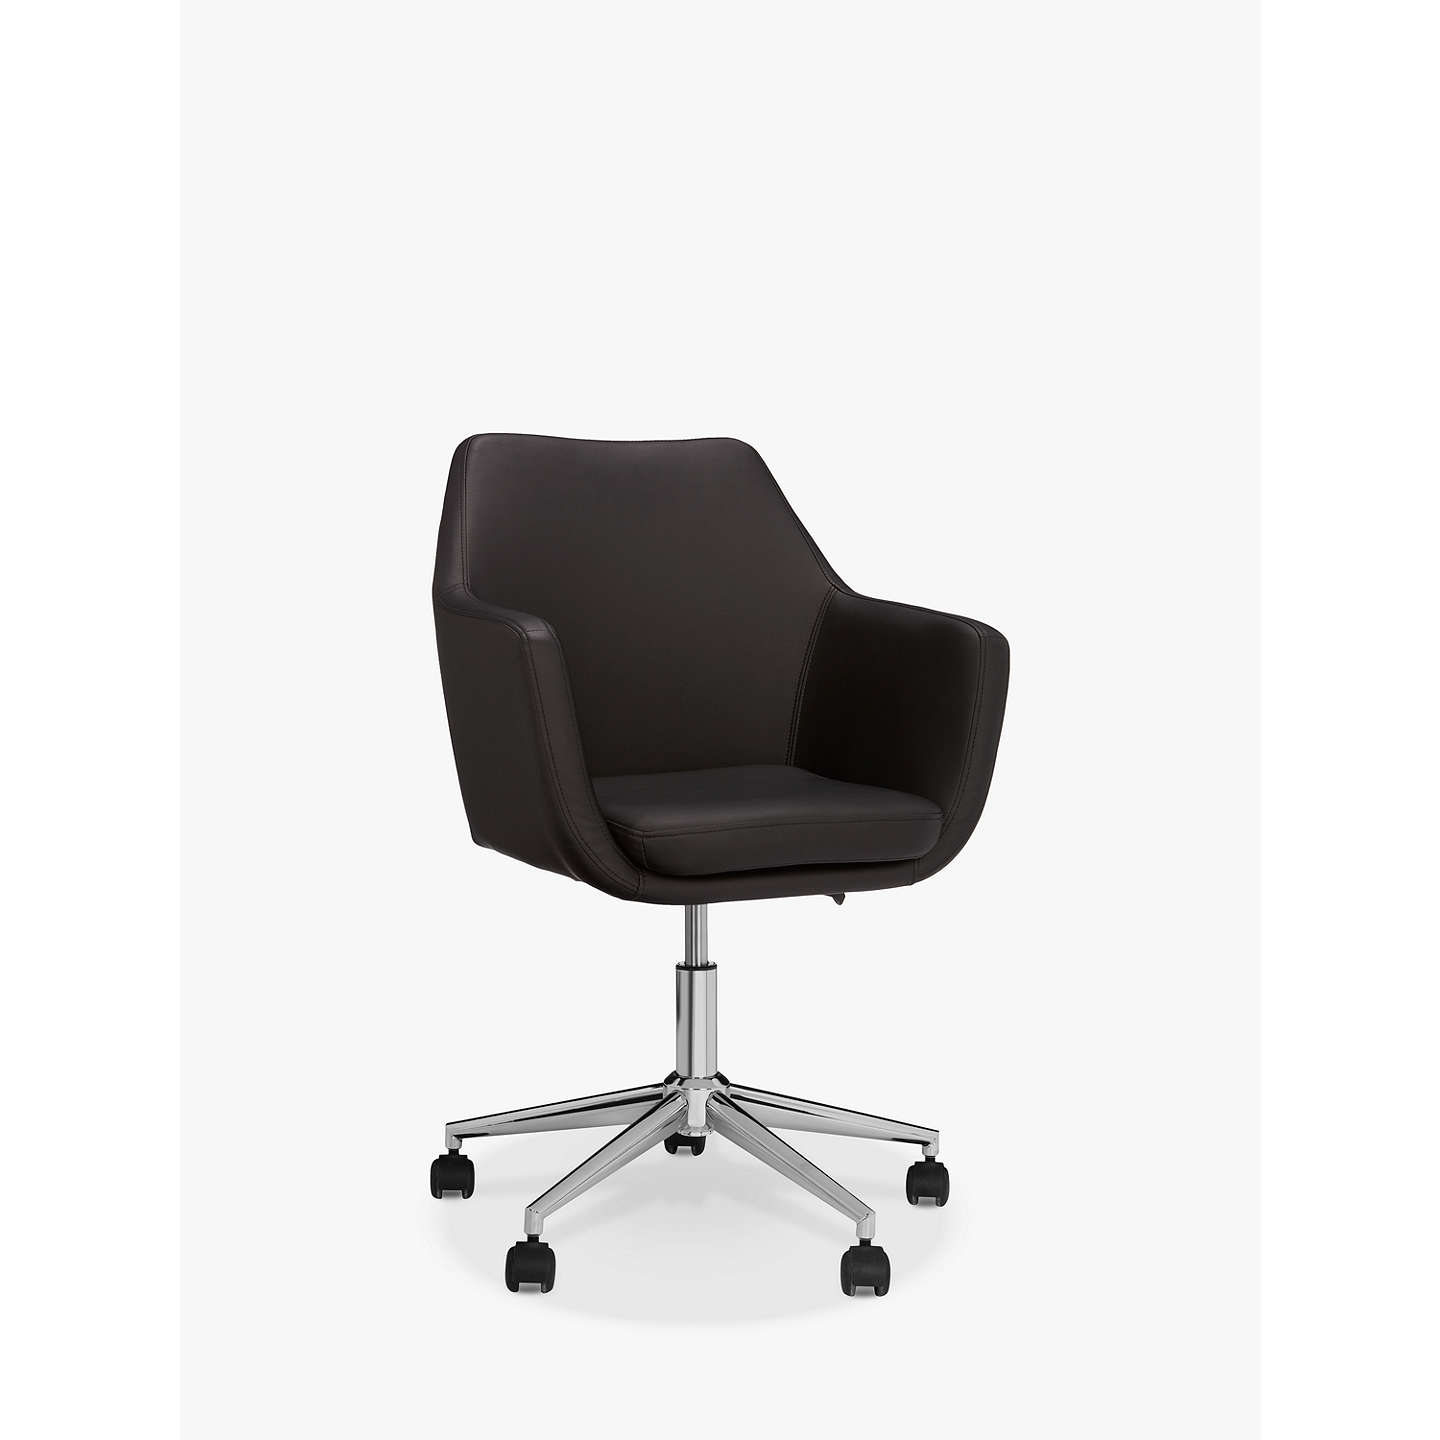 chair white product office soft and i management staples back low chairs eames ray pad charles leather